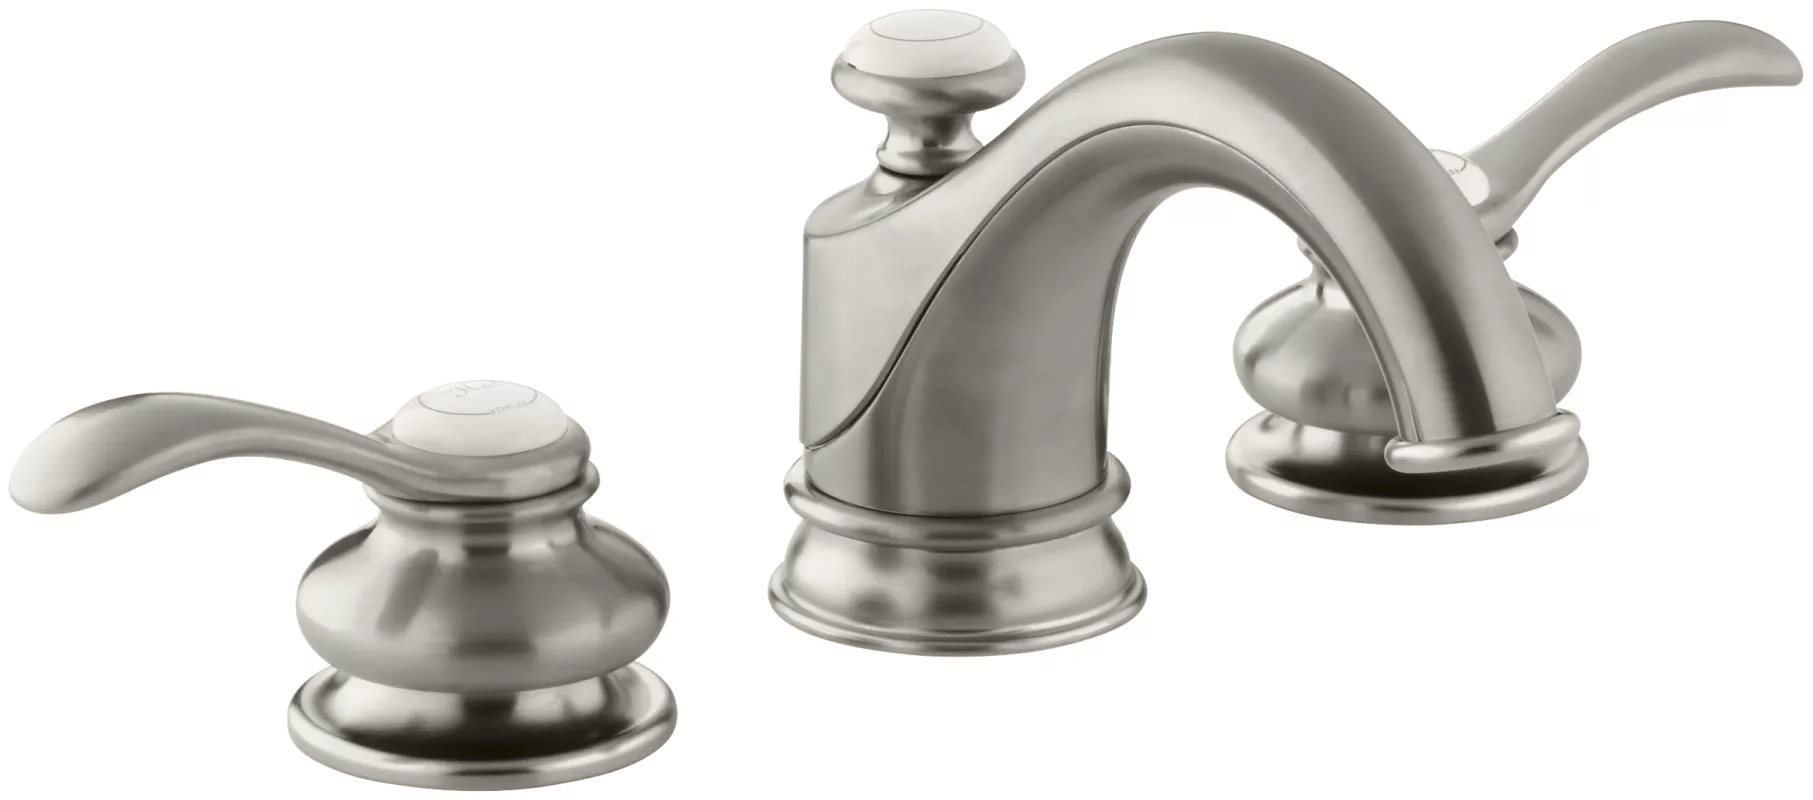 Kohler k122654 Bathroom Faucet  Buildcom